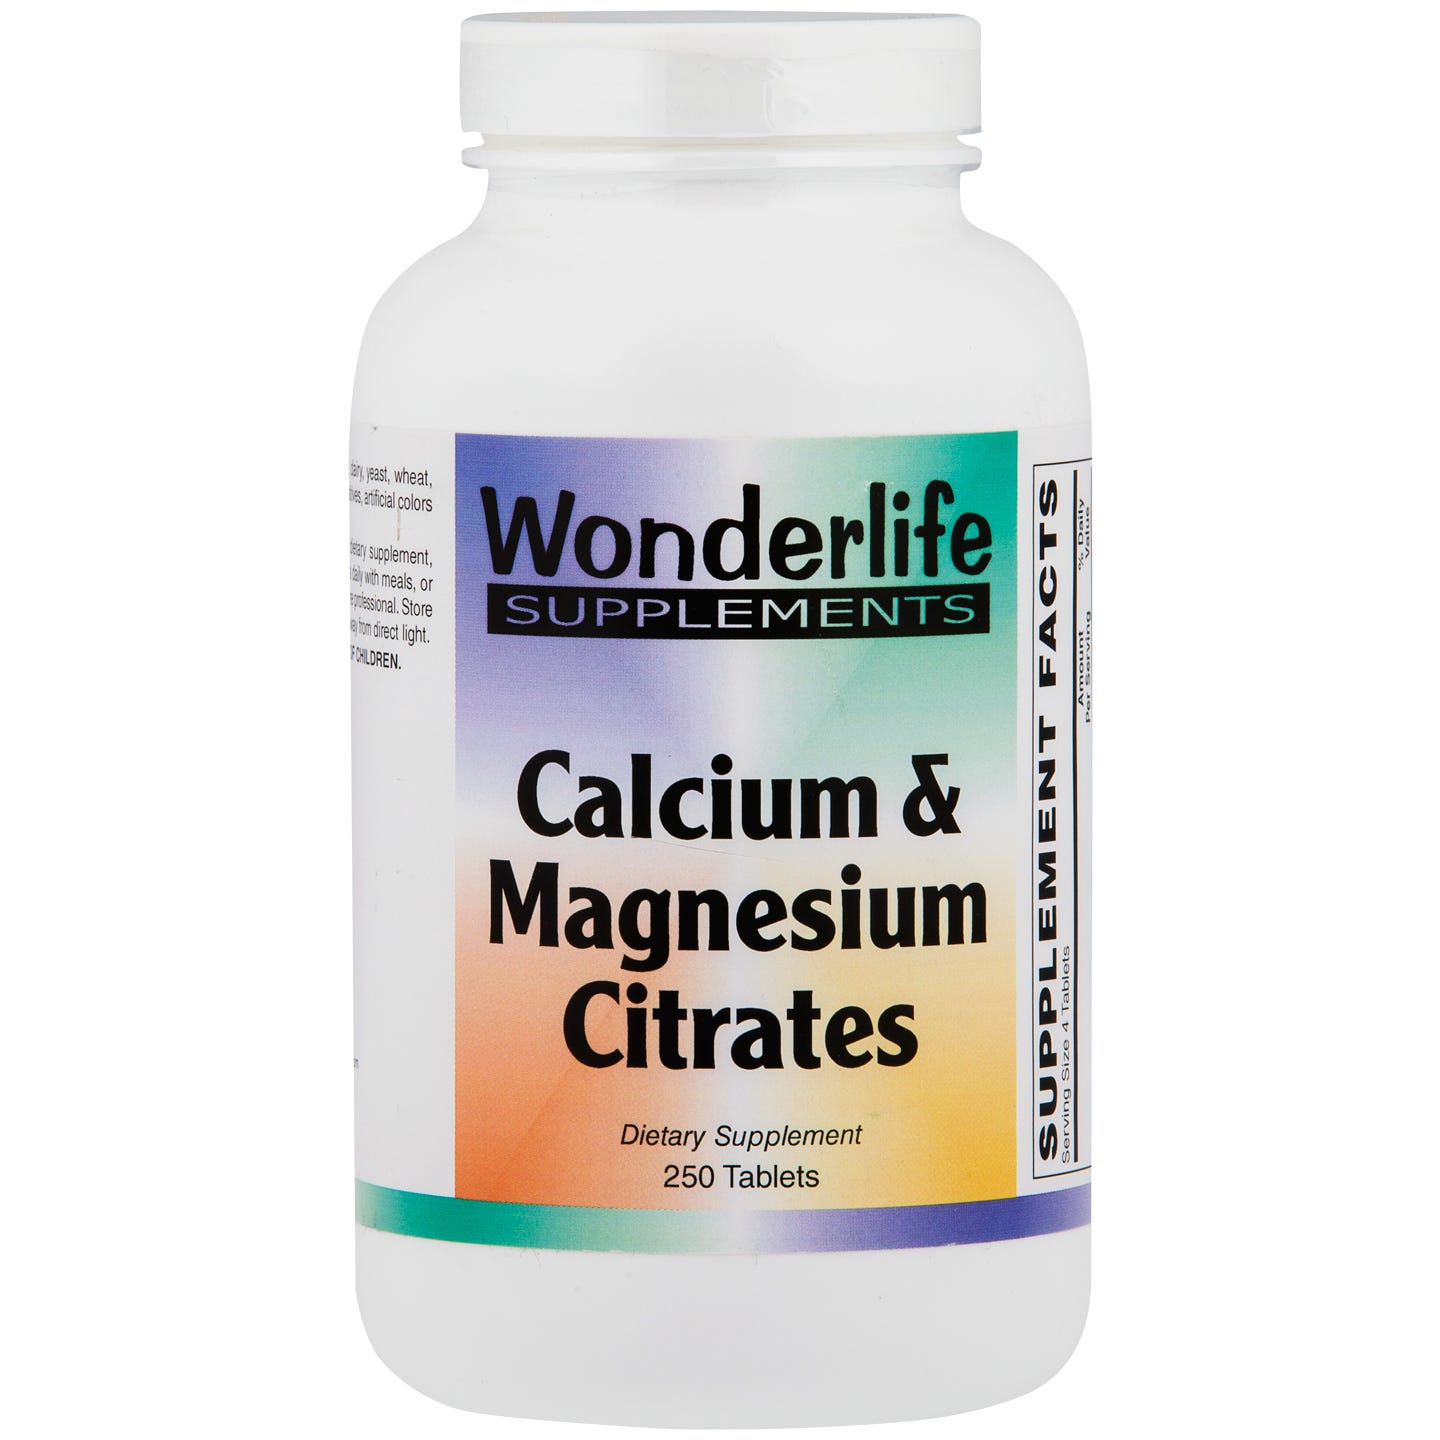 Calcium & Magnesium Citrates Tablets (250 ct), Wonderlife - Rapid Diet Weight Loss Products Shop